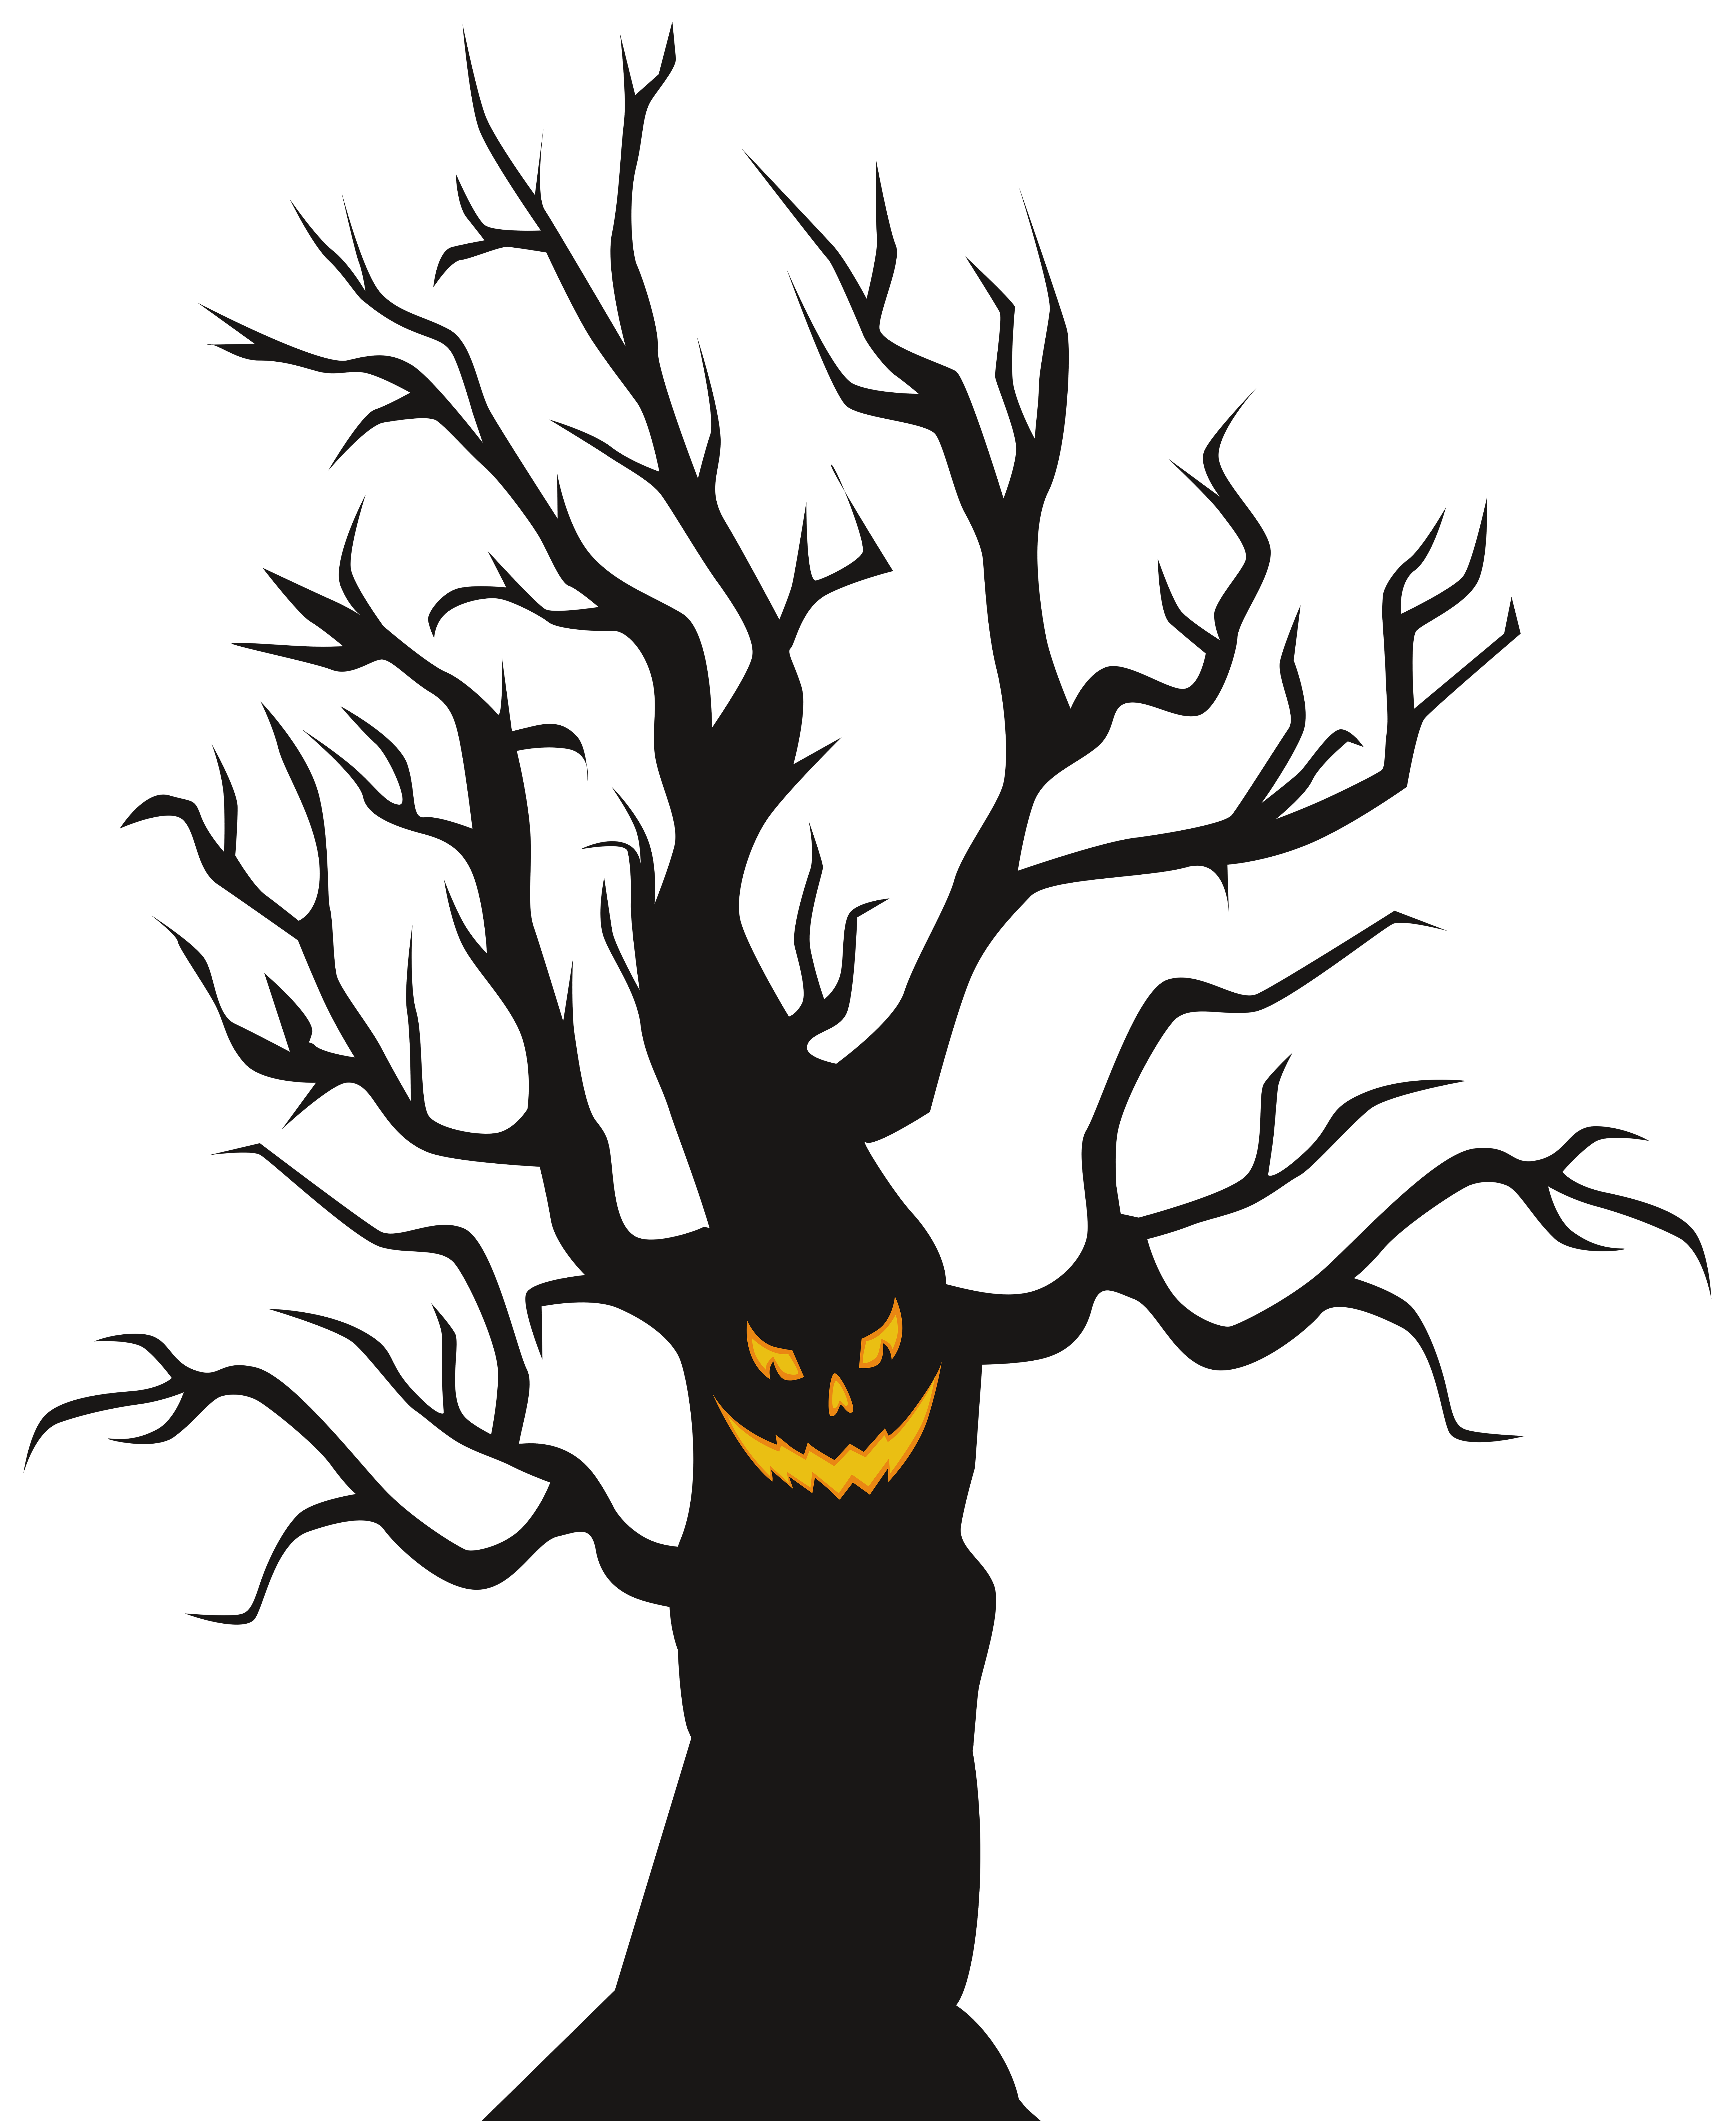 Scary halloween clipart clipart images gallery for free.